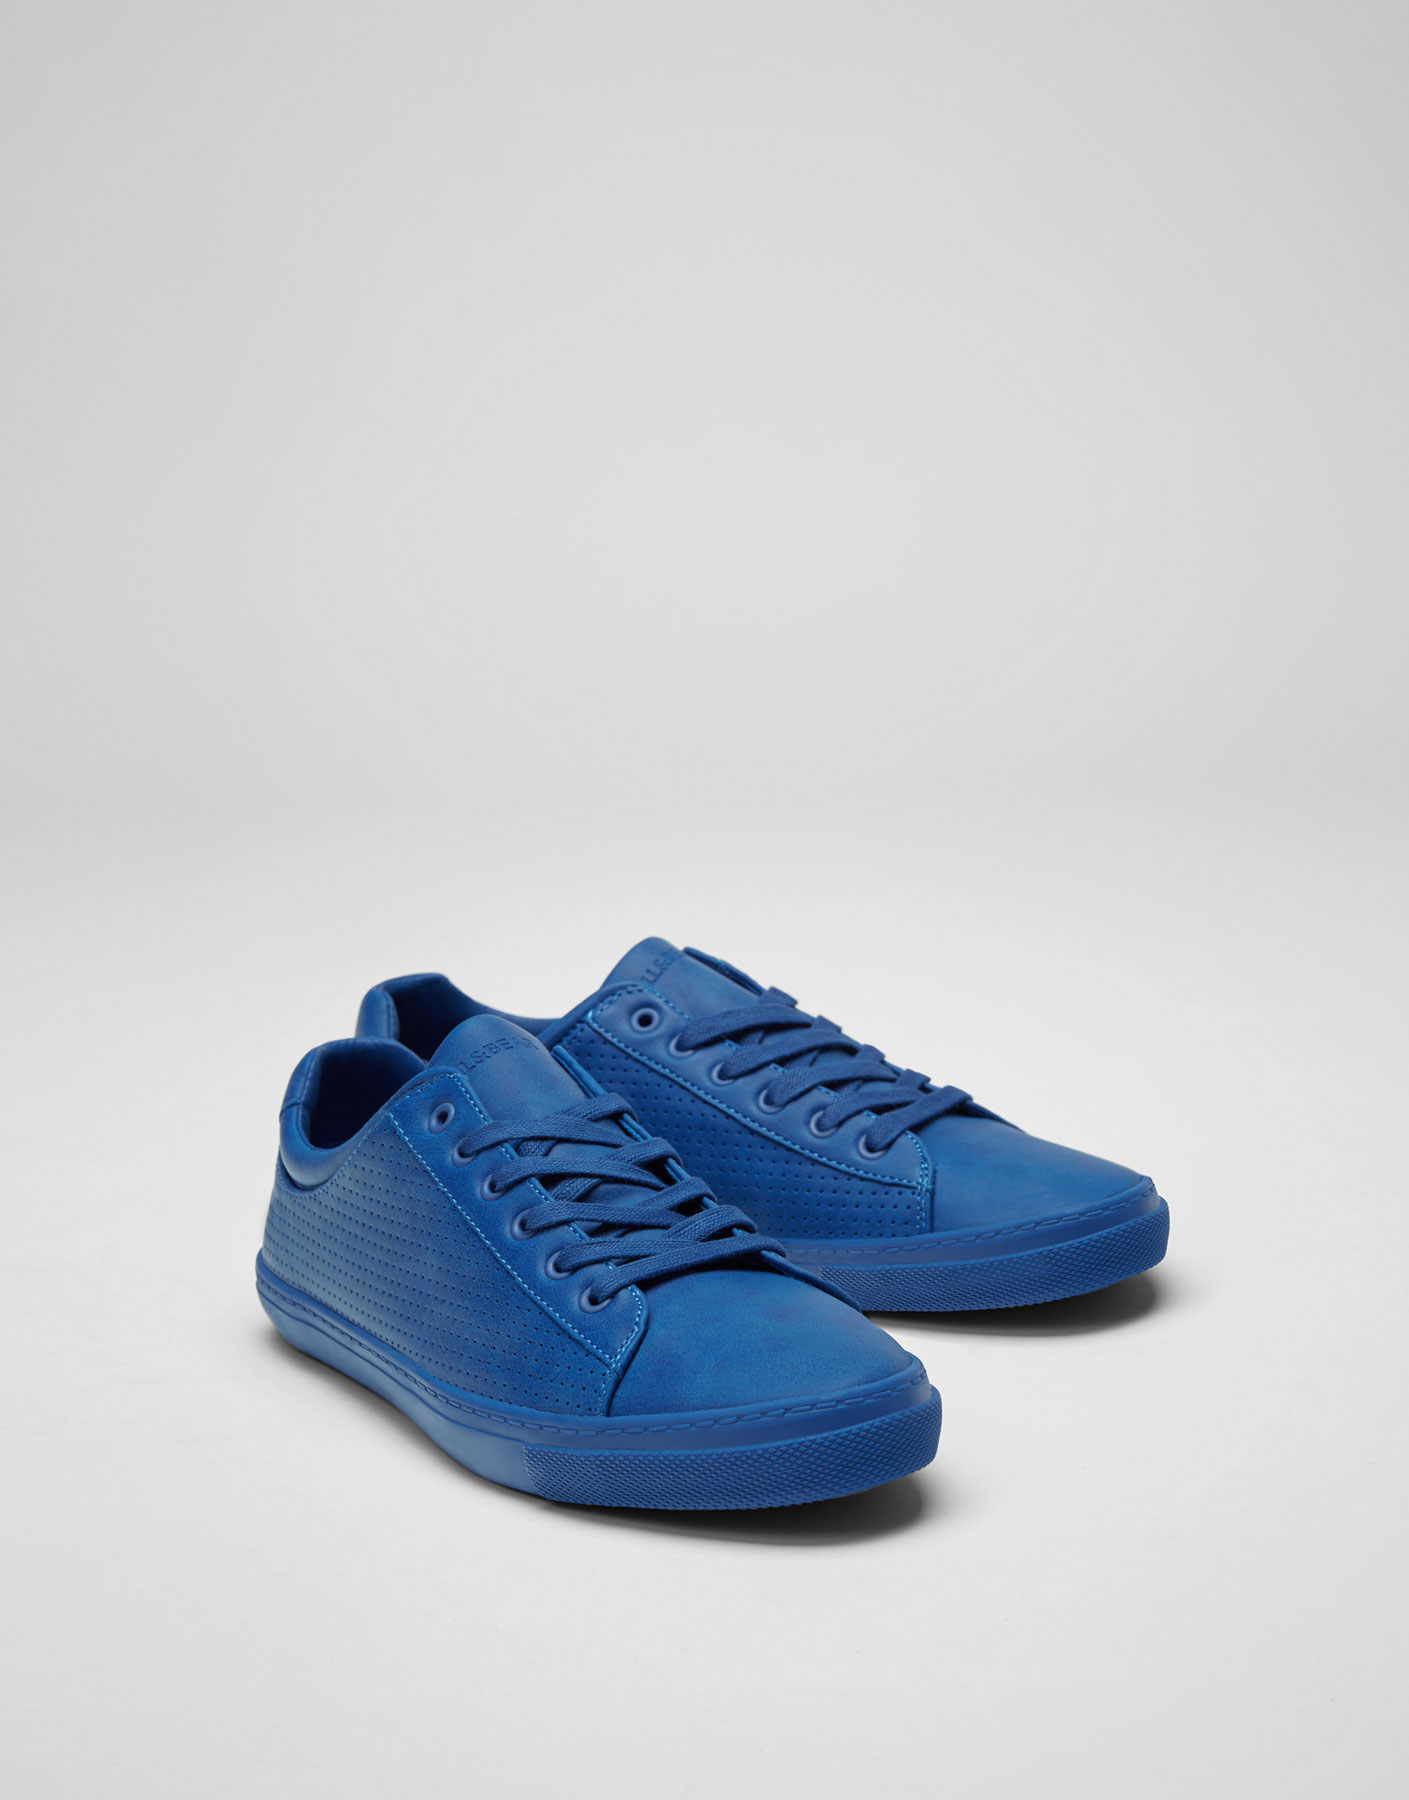 Blue colour block plimsolls with brogueing